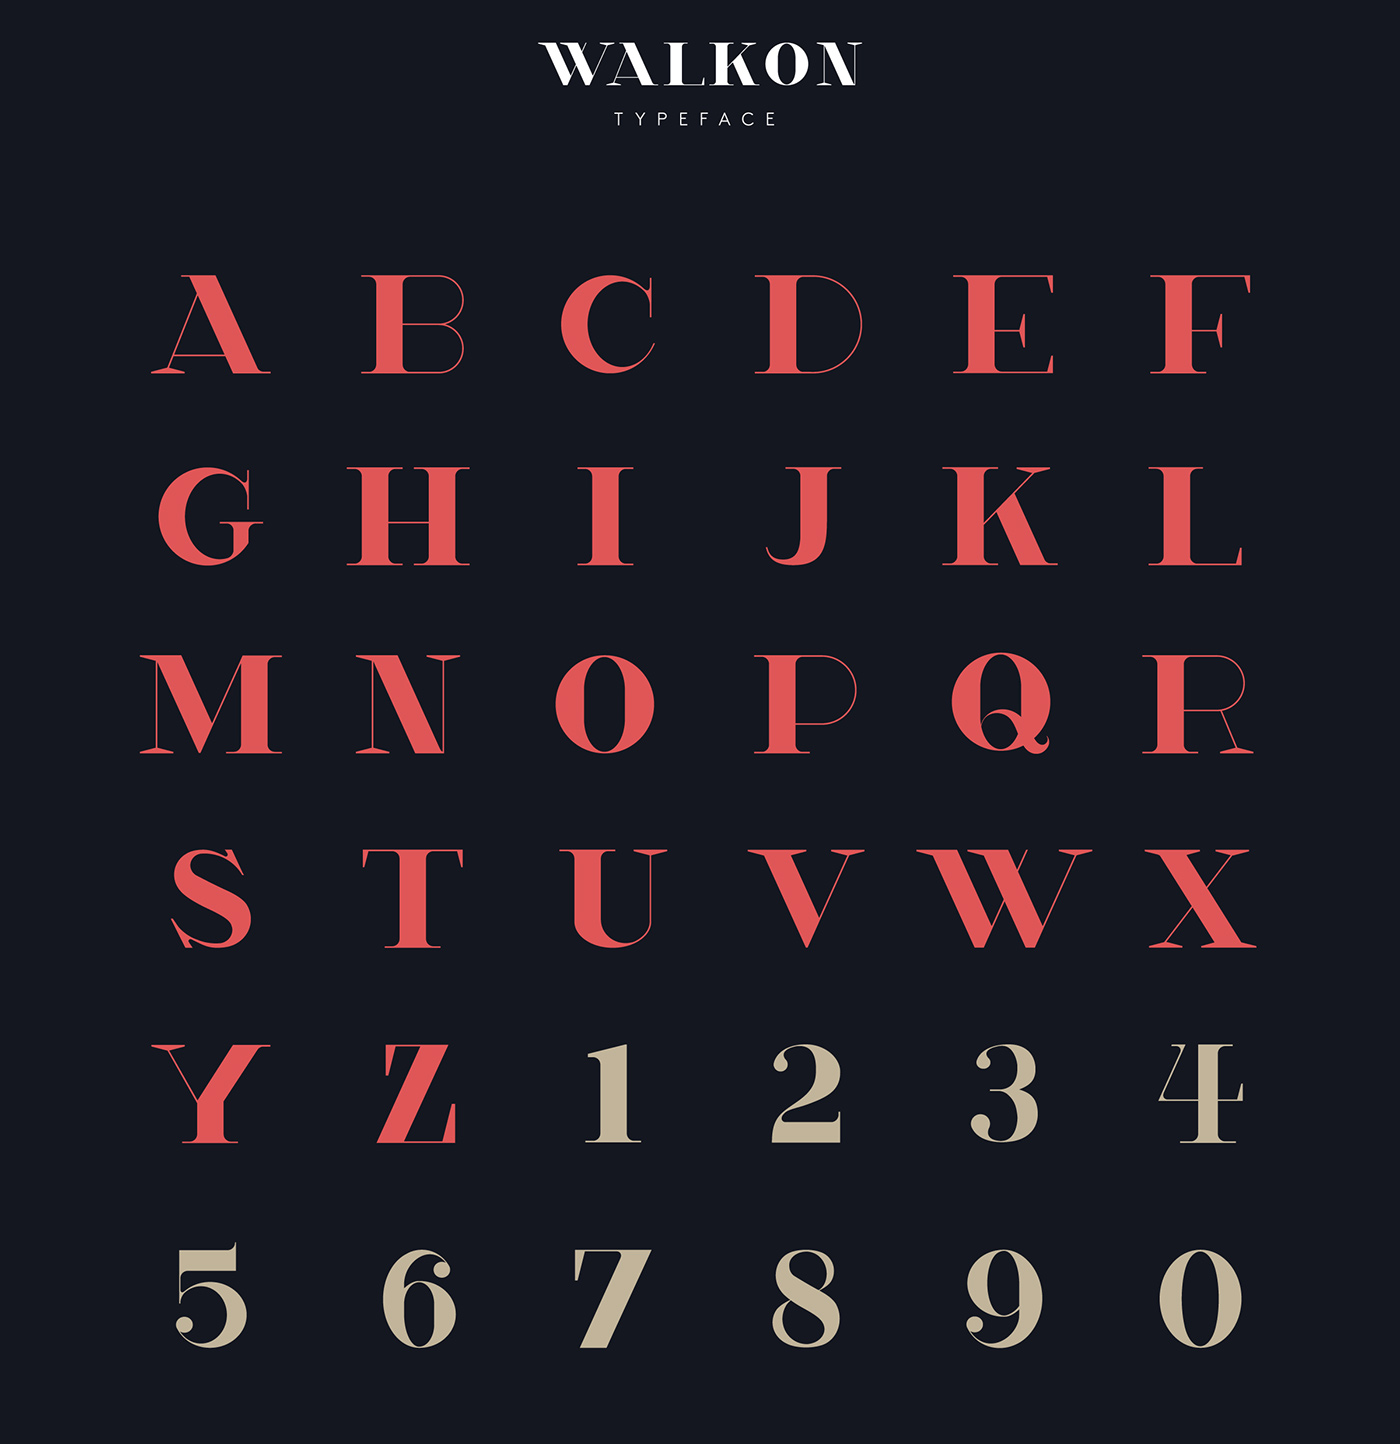 WalkOn - Typeface on